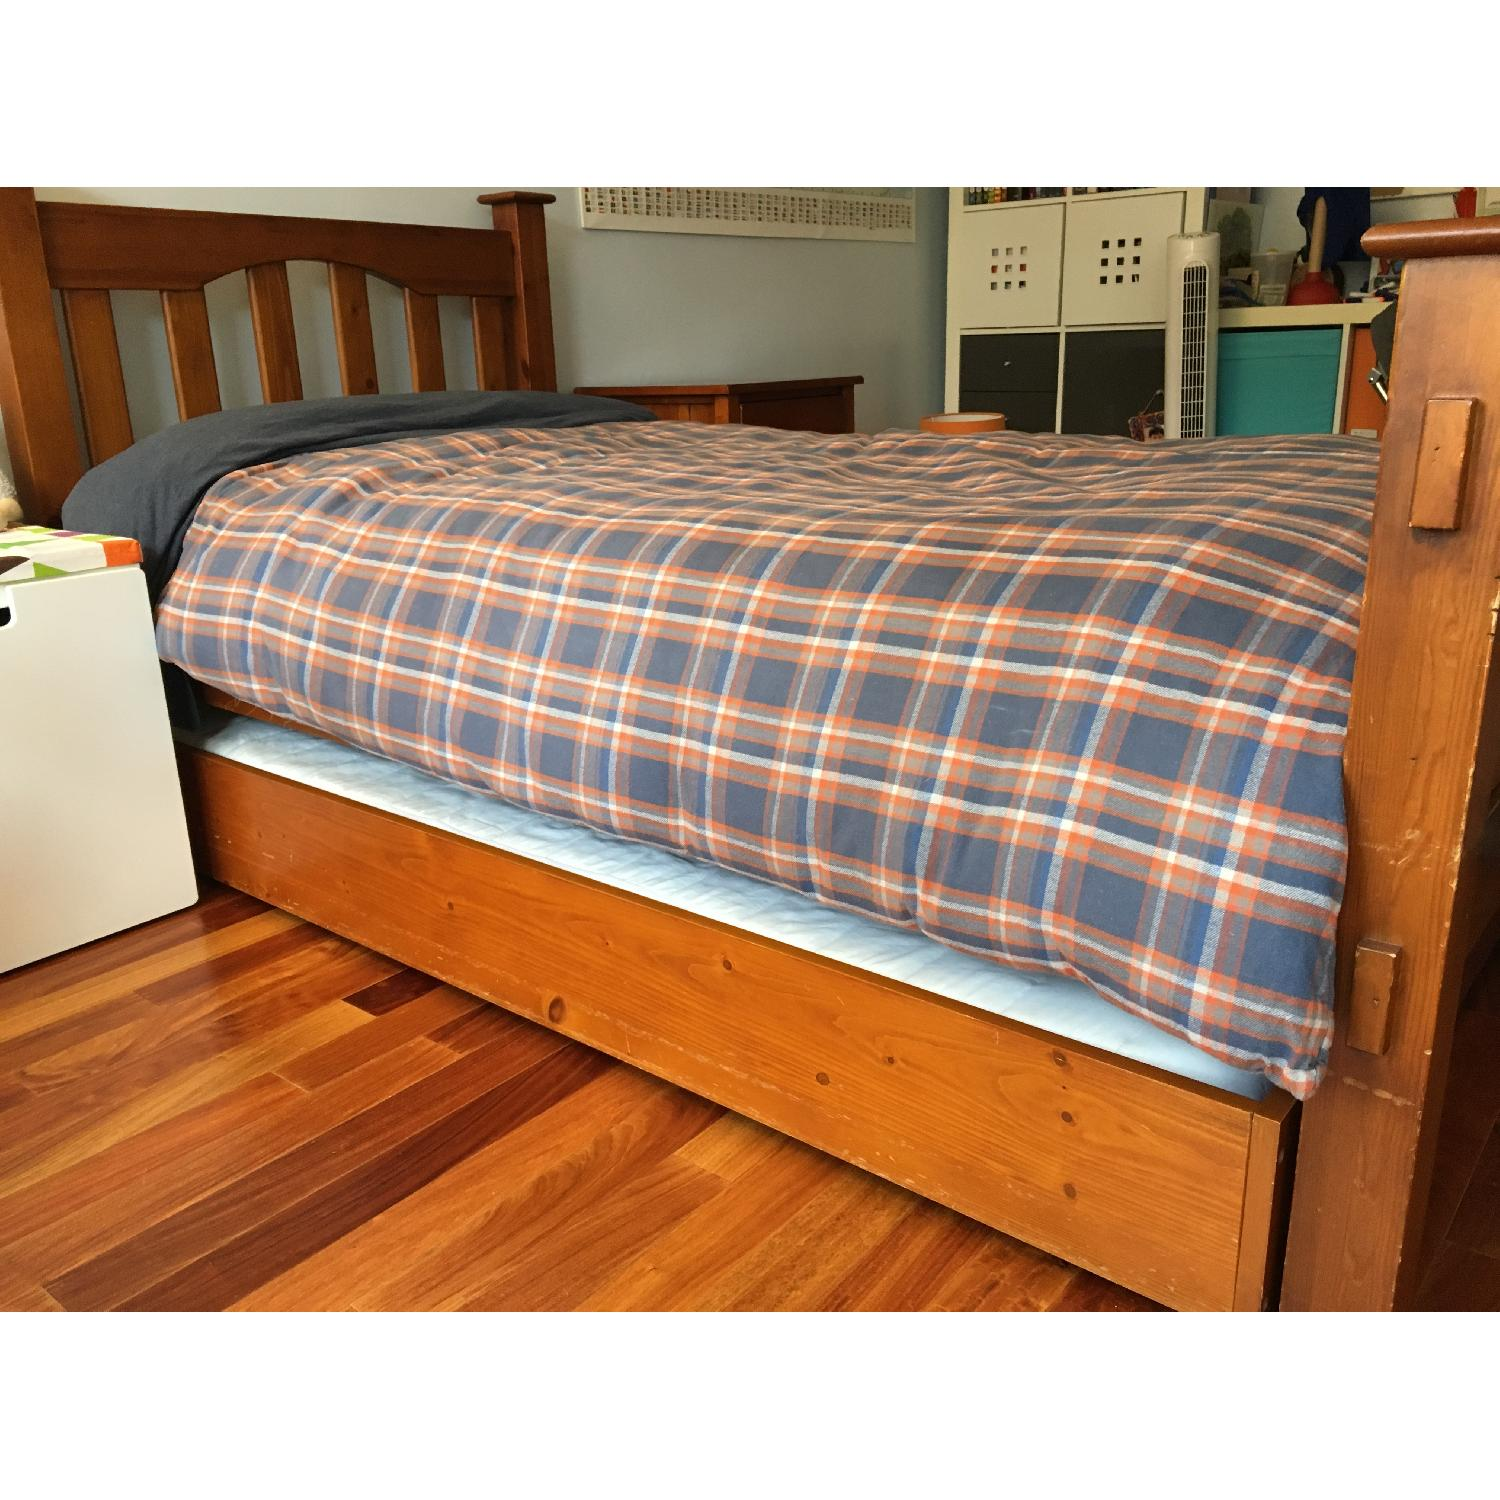 Pottery Barn Kendall Twin Bed w/ Trundle - image-1